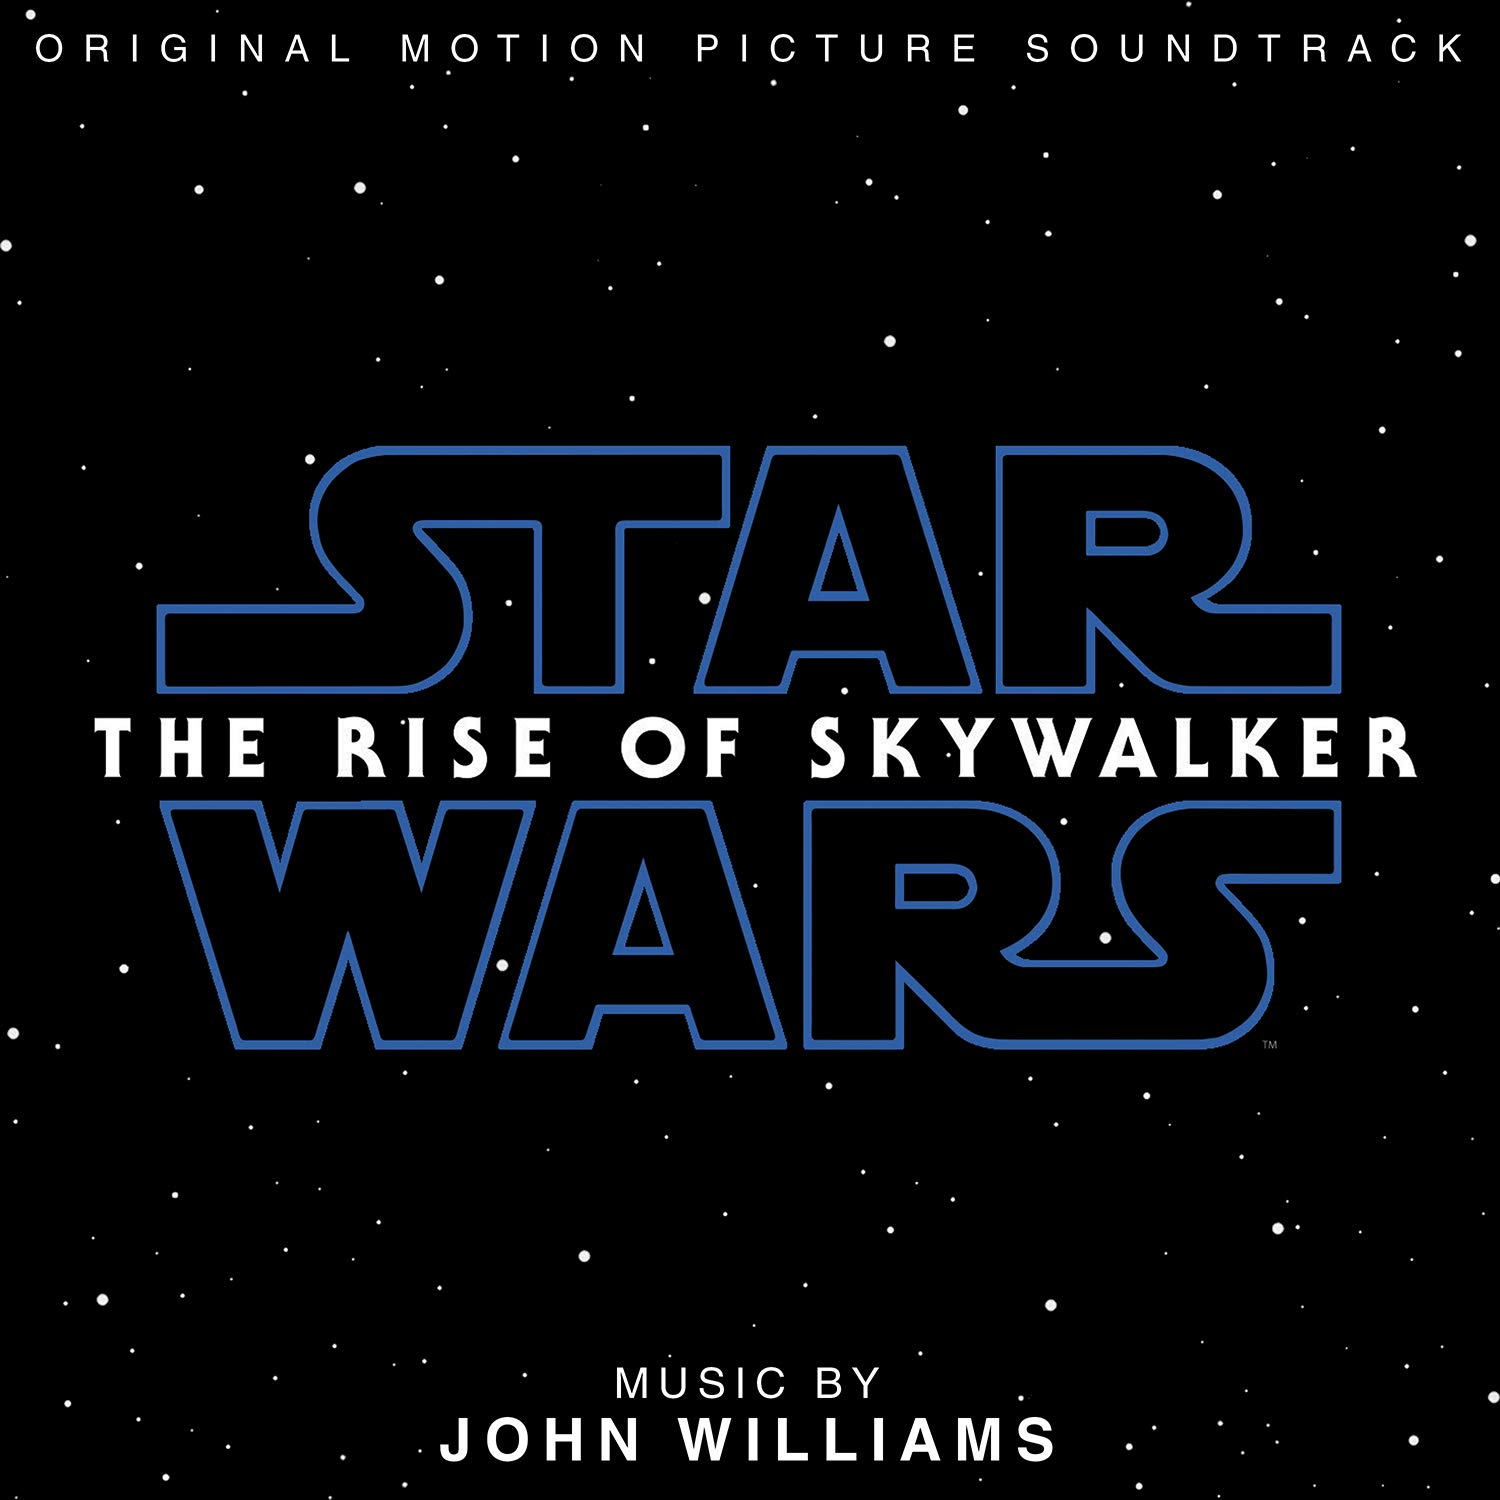 'STAR WARS - THE RISE OF SKYWALKER' - ORIGINAL MOTION PICTURE SOUNDTRACL